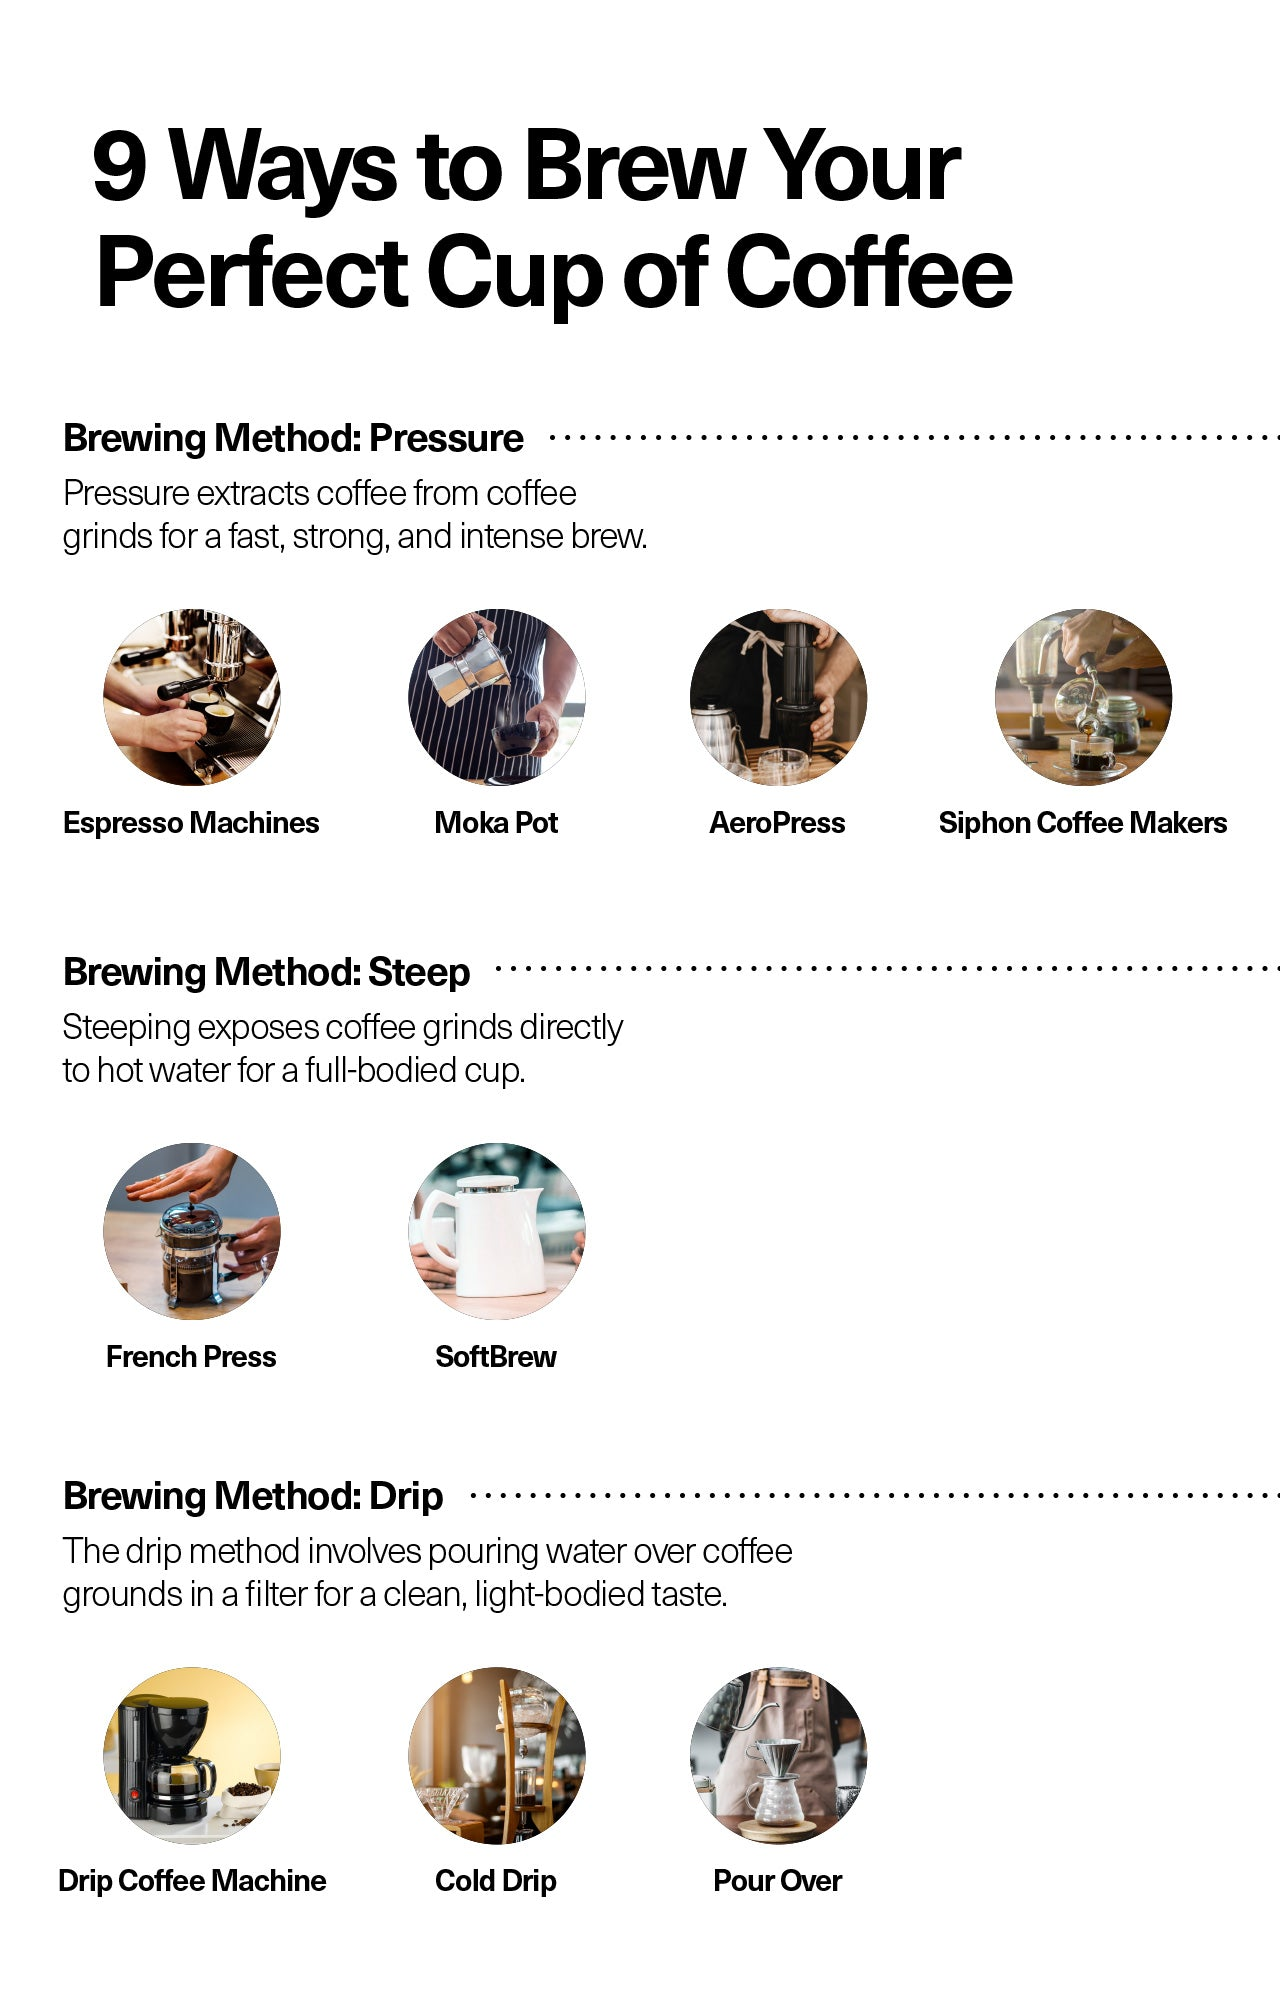 9 Ways to Brew Your Perfect Cup of Coffee